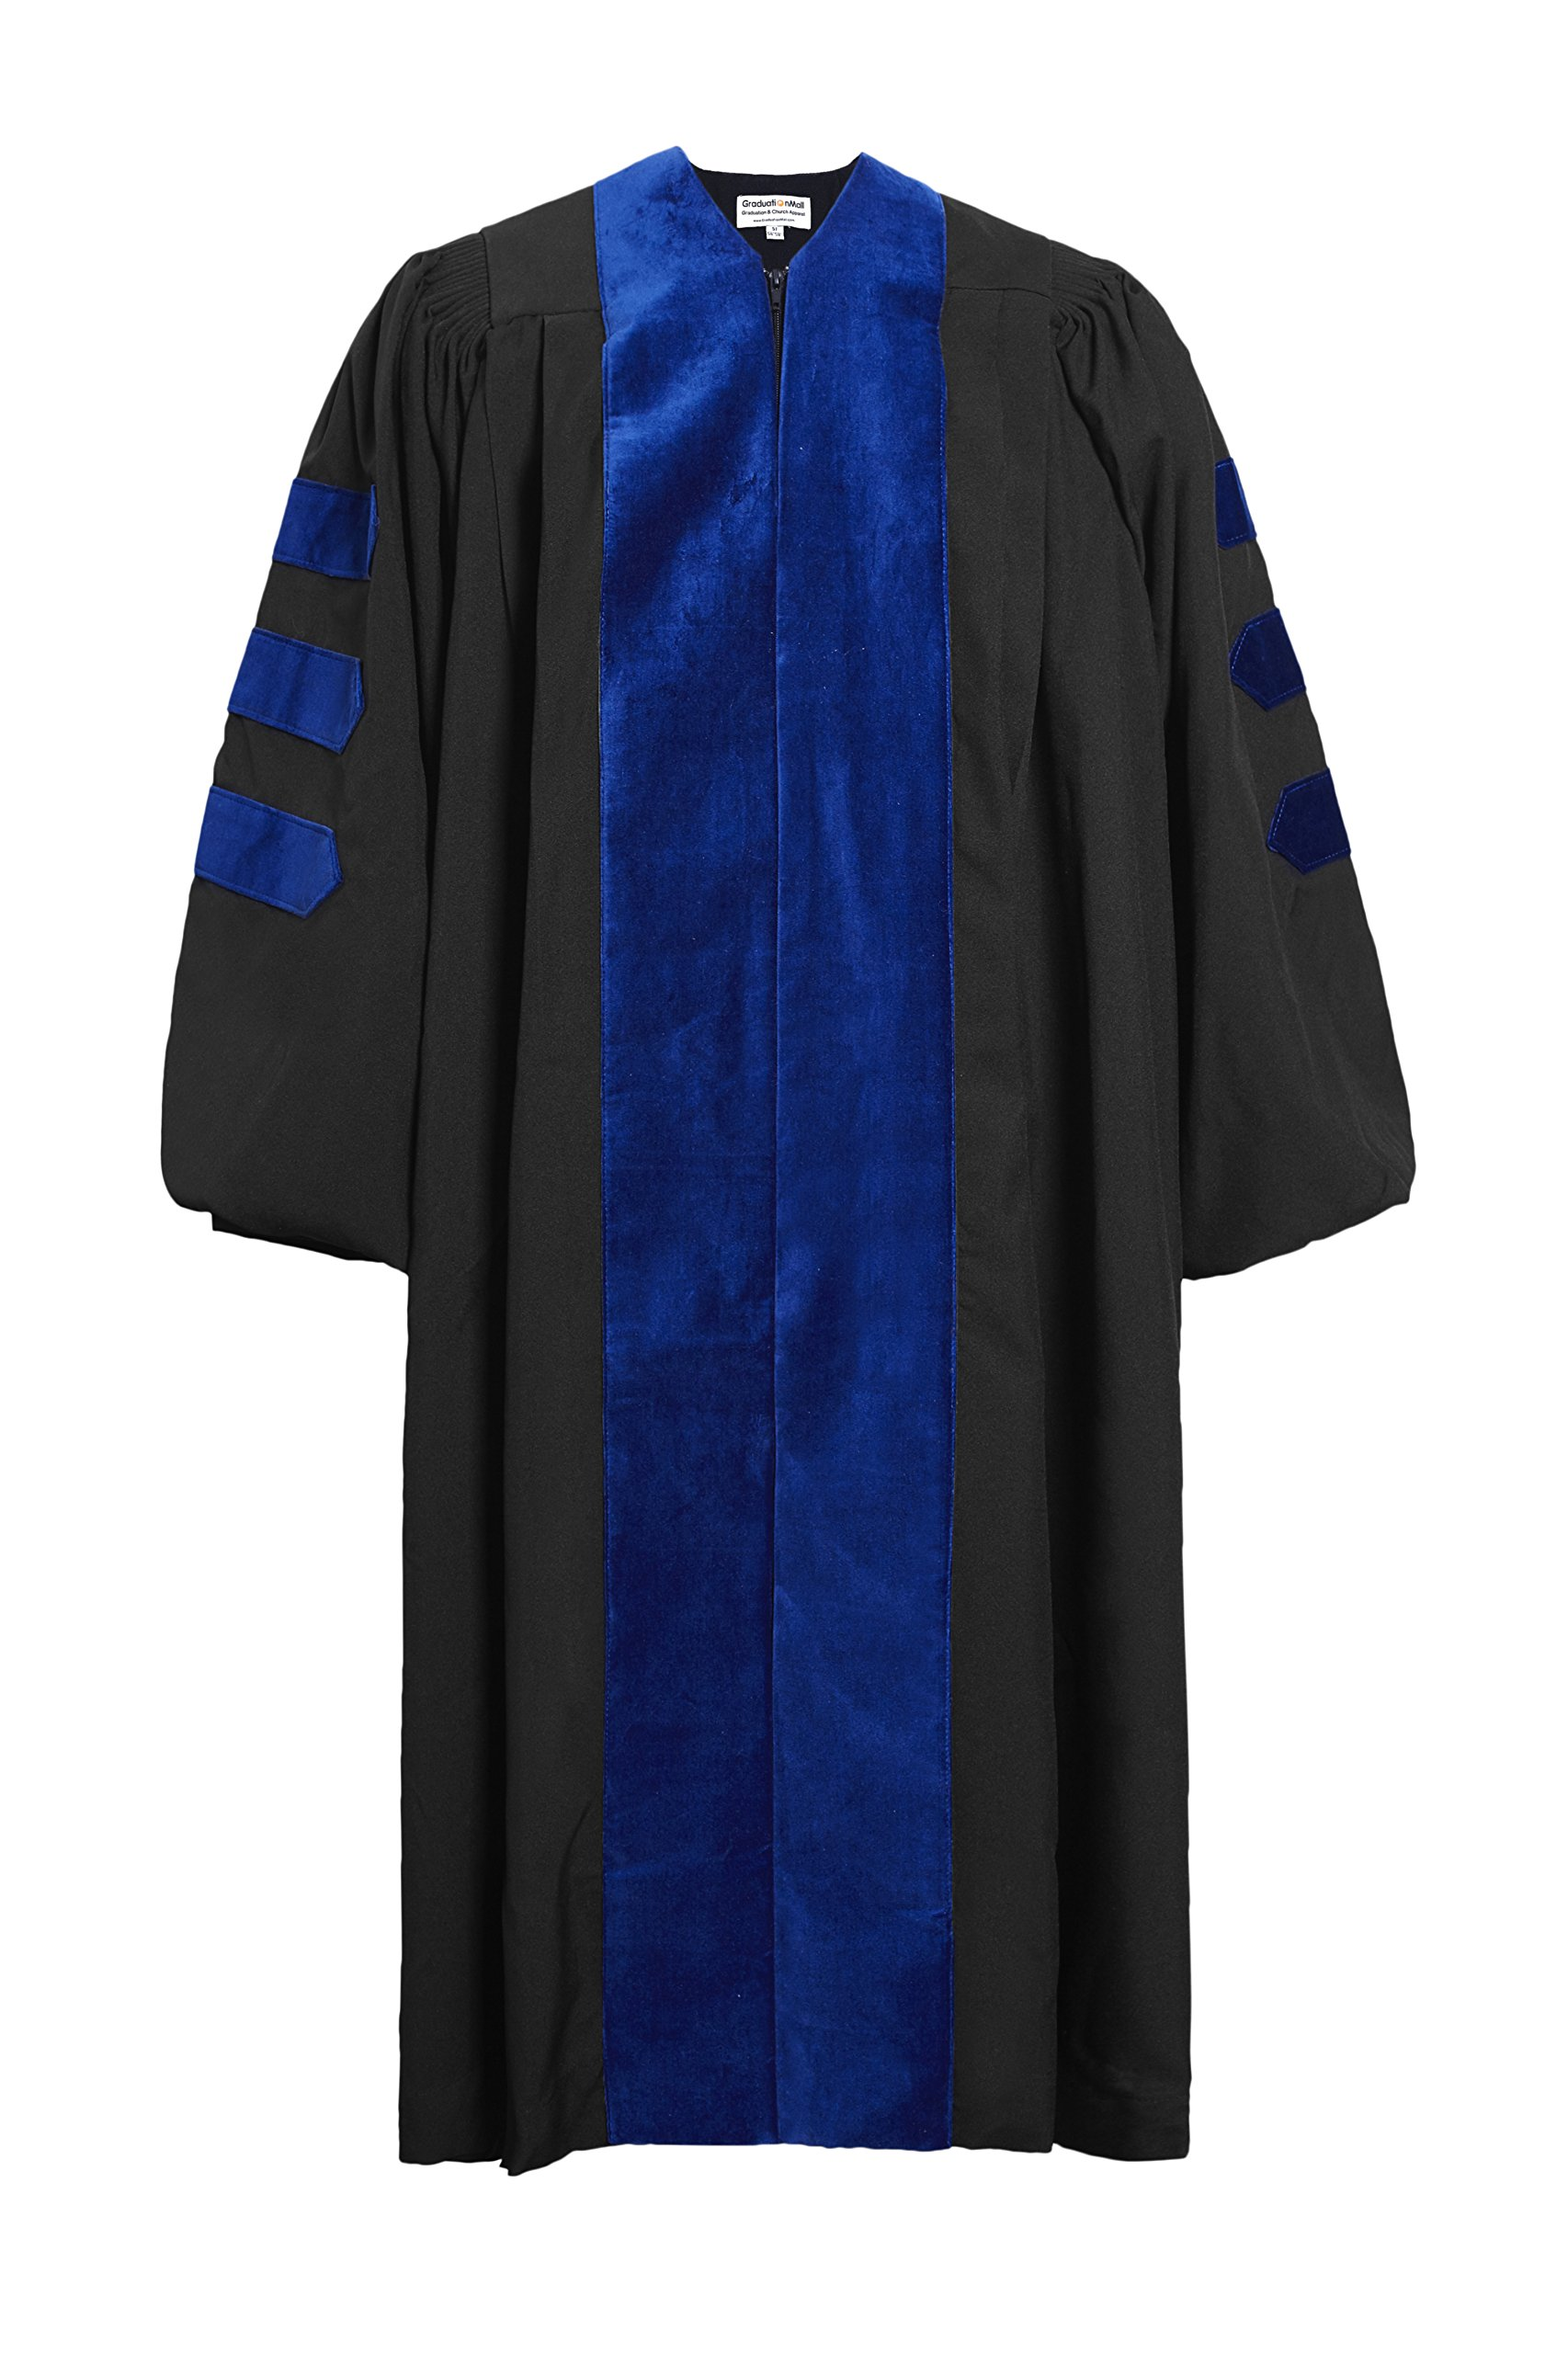 GraduationMall Unisex-adult's Deluxe Doctoral Graduation Gown-Phd Blue Trim 63(6'6''-6'8'')